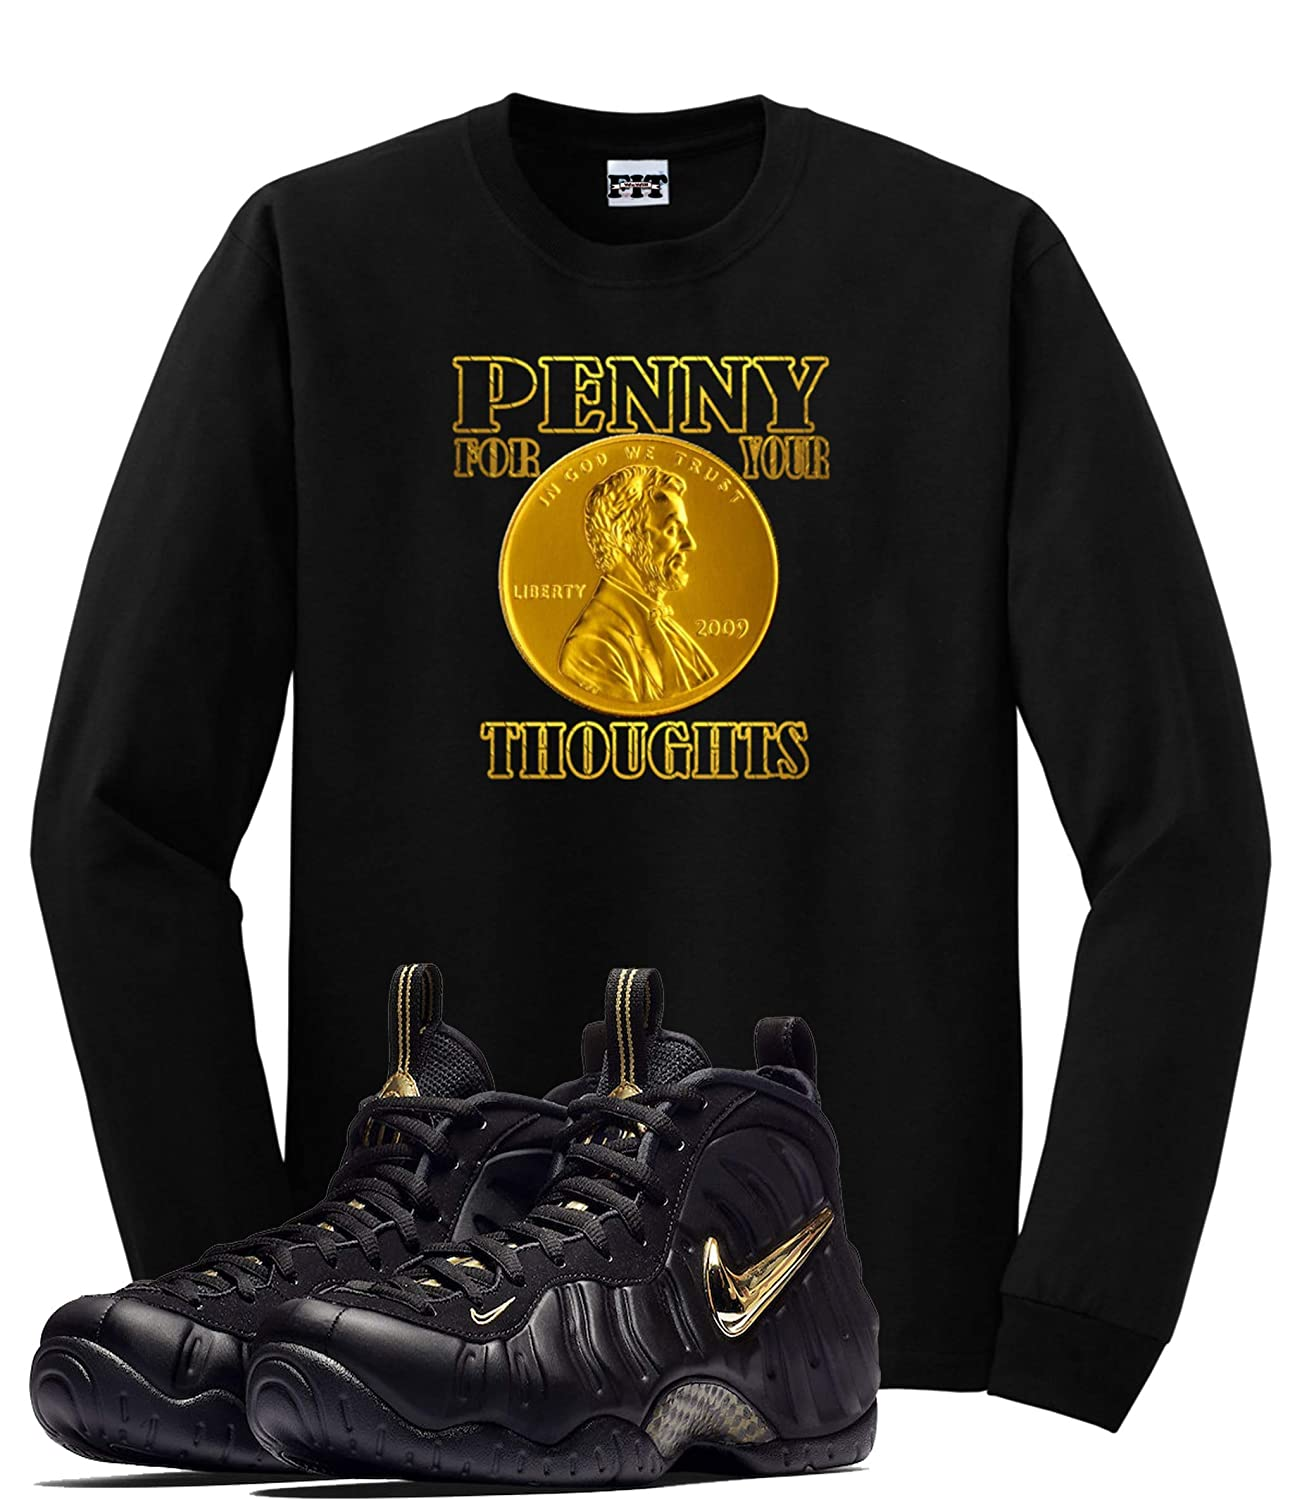 newest 39a21 381d9 We Will Fit Shirt to Match The Nike Air Foamposite Pro Black Metallic Gold    Amazon.com